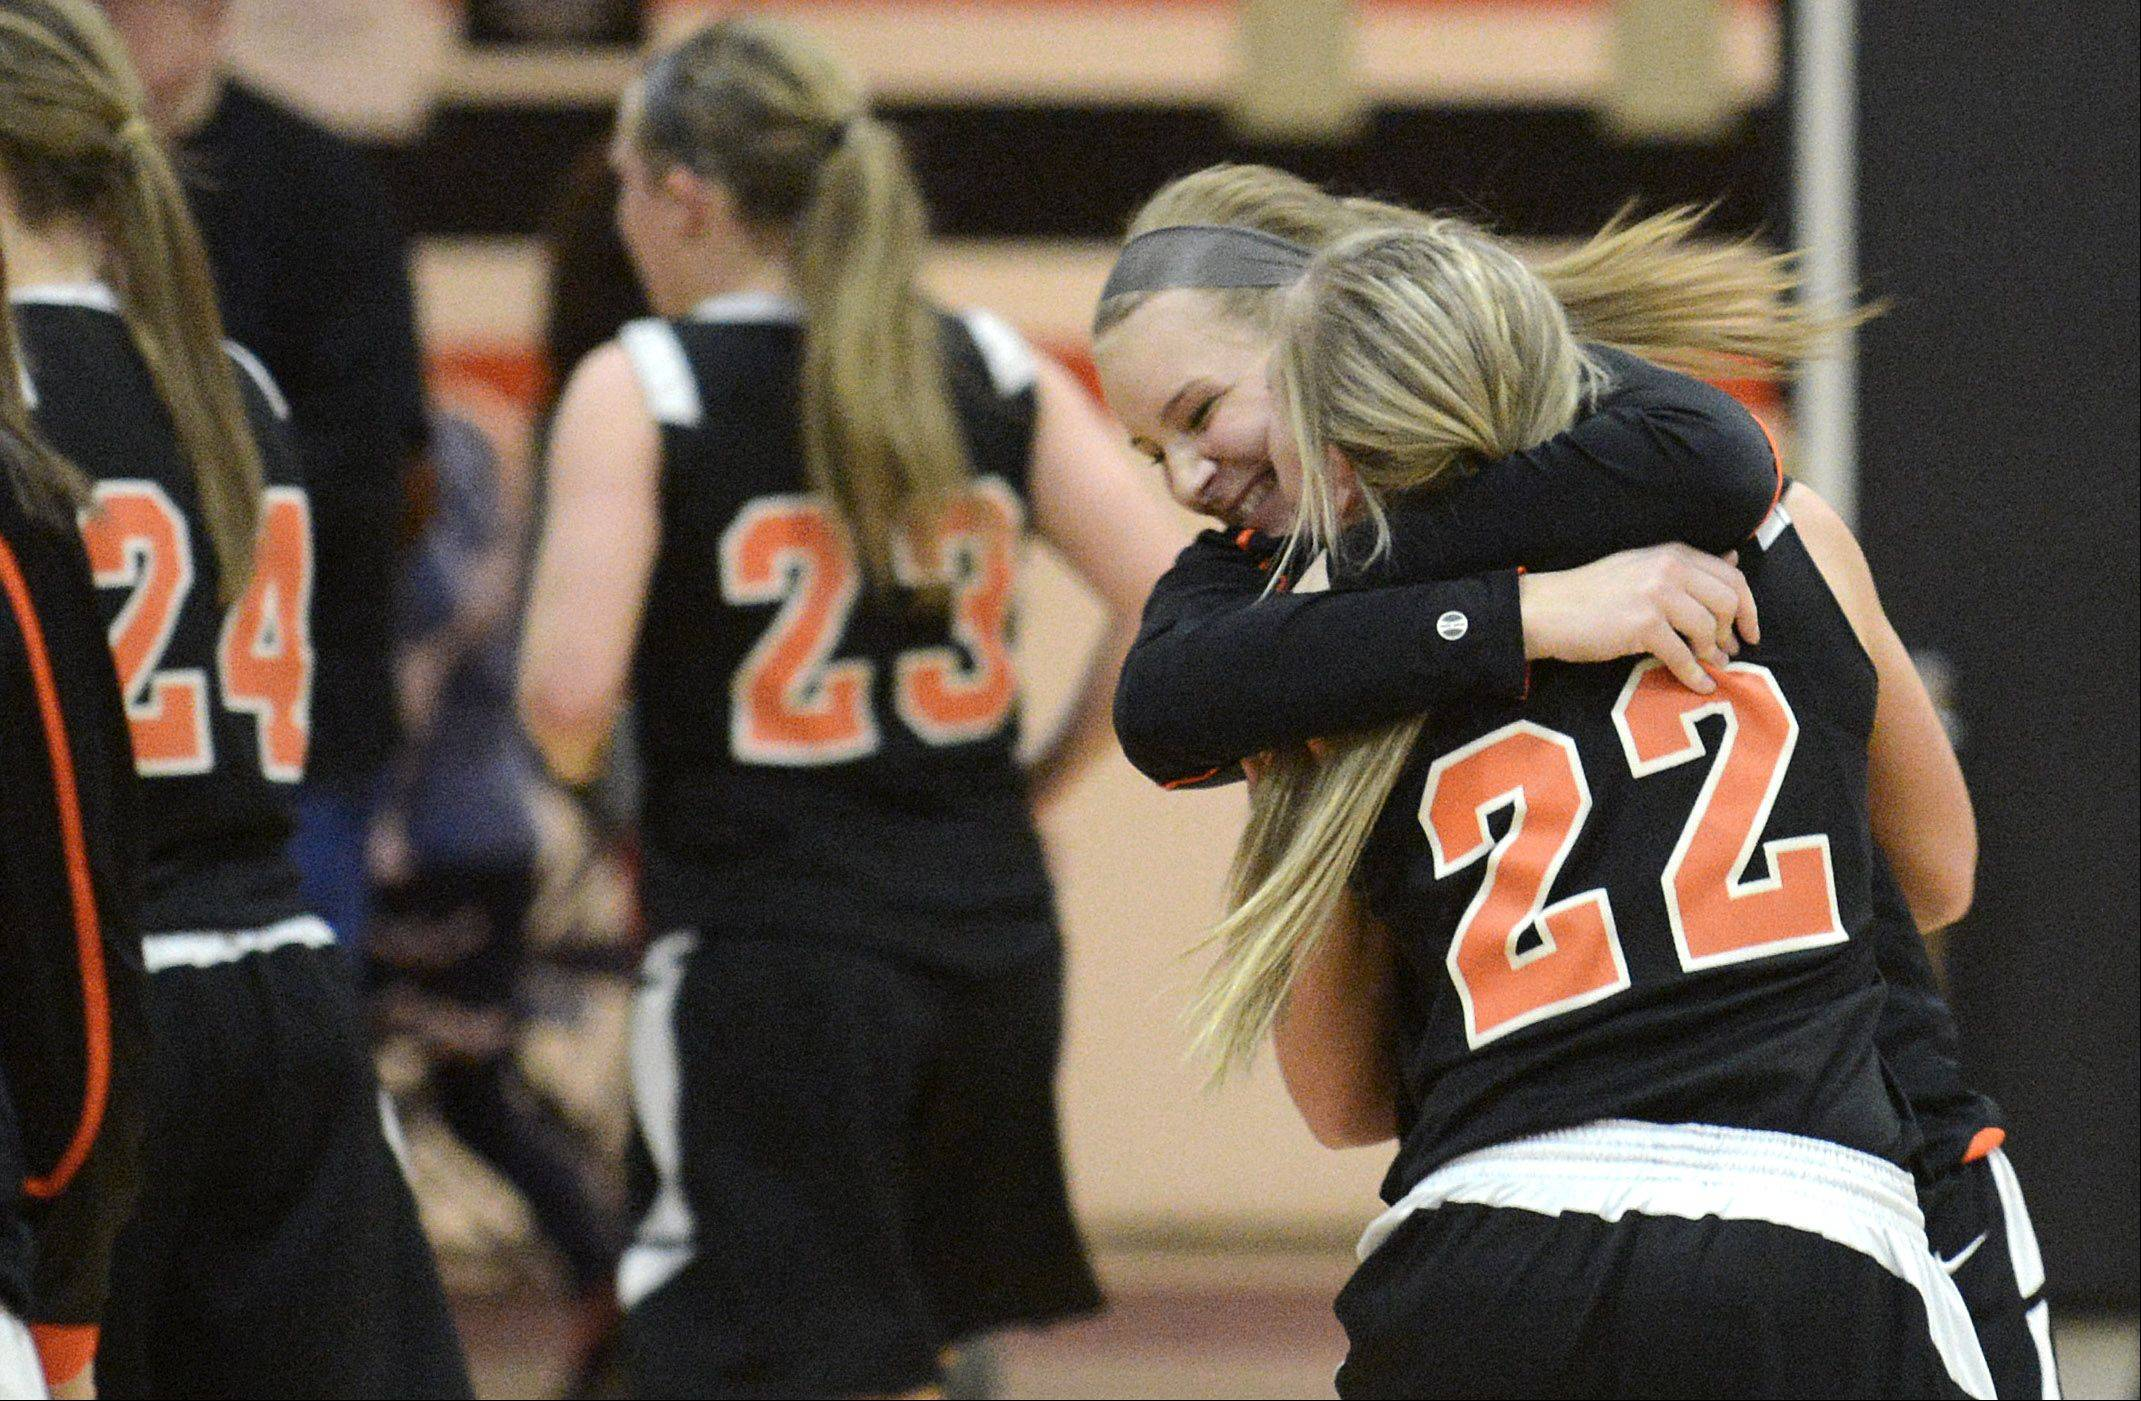 Laura Stoecker/lstoecker@dailyherald.com St. Charles East's Marlena Detzel (facing) embraces teammate Anna Bartels after their win over Batavia in the 4A regional on Tuesday, February 12.